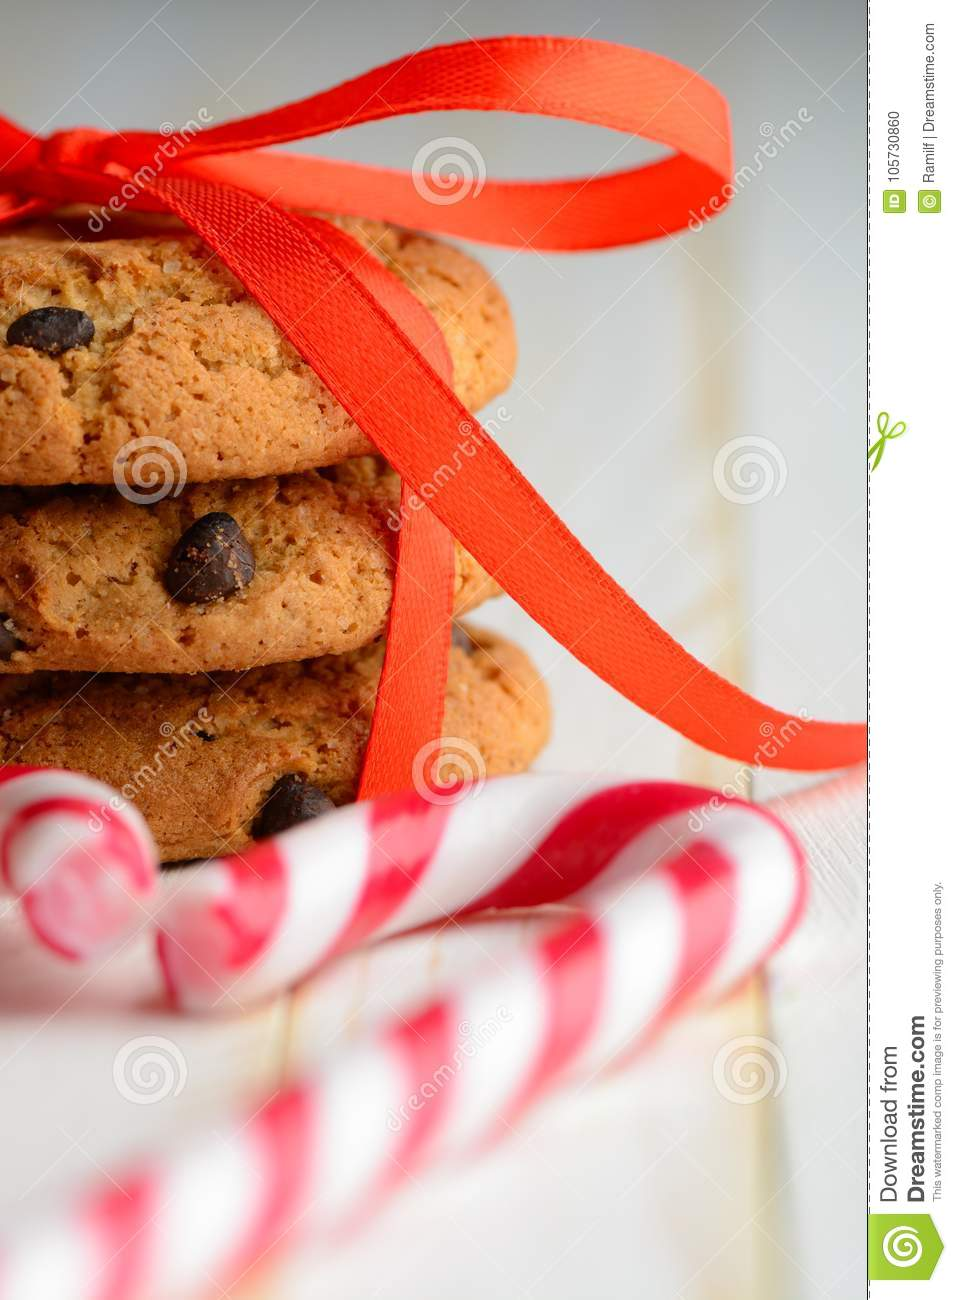 Chocolate Chip Cookies And Candy Canes Stock Photo Image Of Pastry